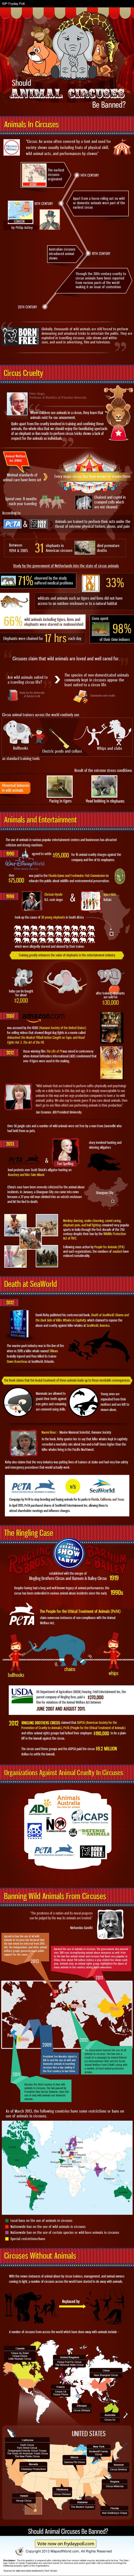 Should Animal Circuses Be Banned? - #69 Fryday Poll - Facts & Infographic